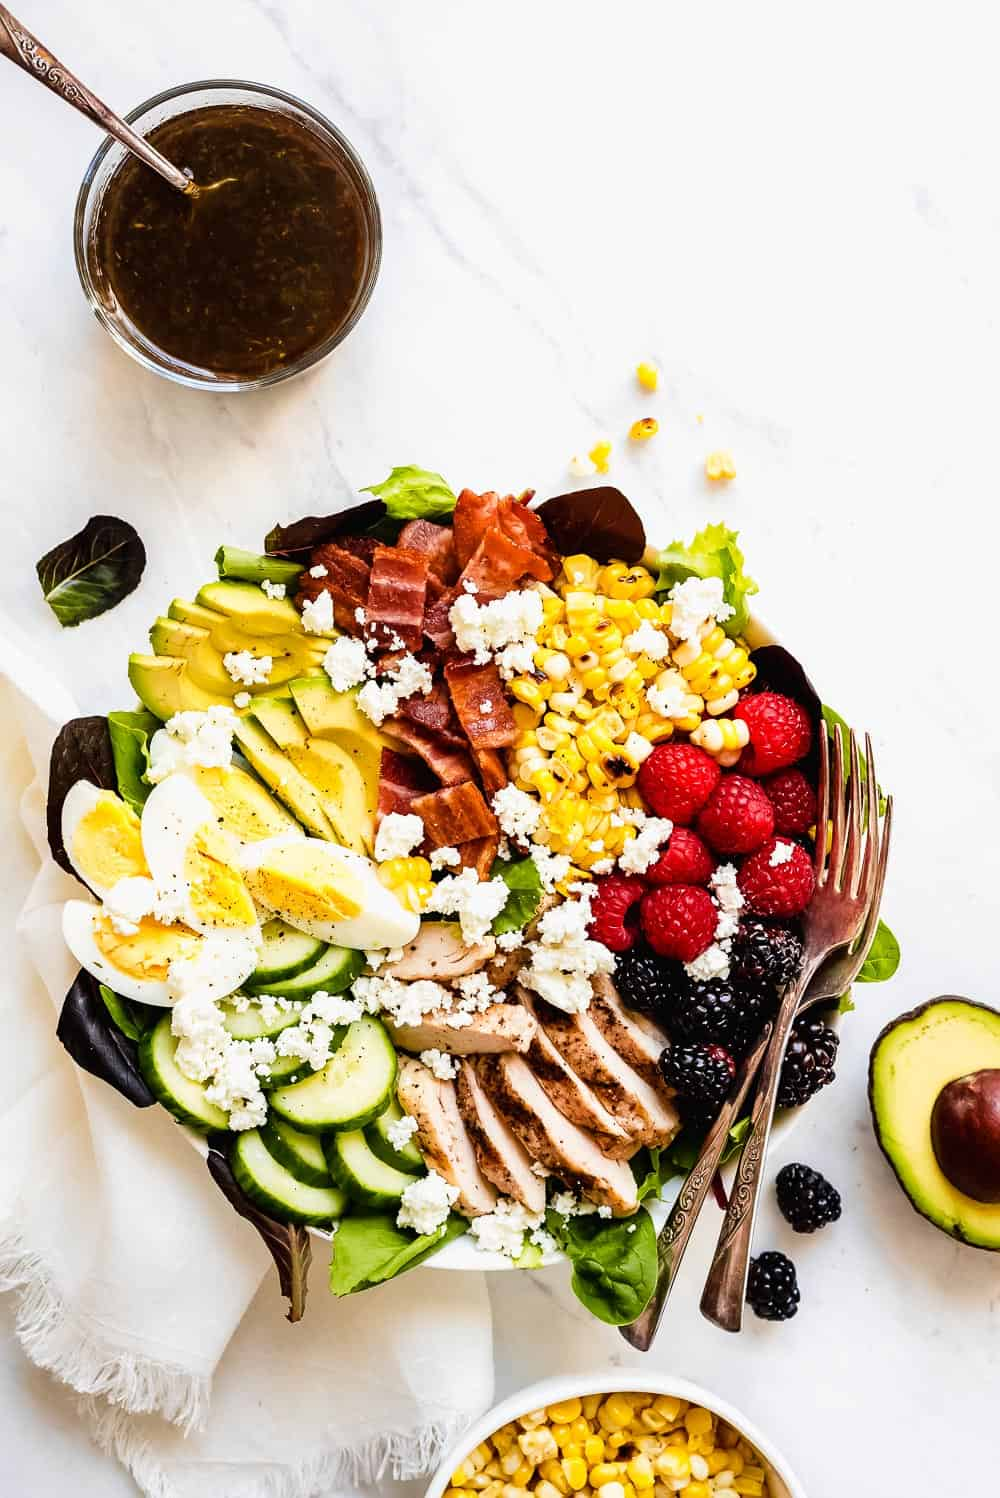 Summer cobb salad in a bowl.